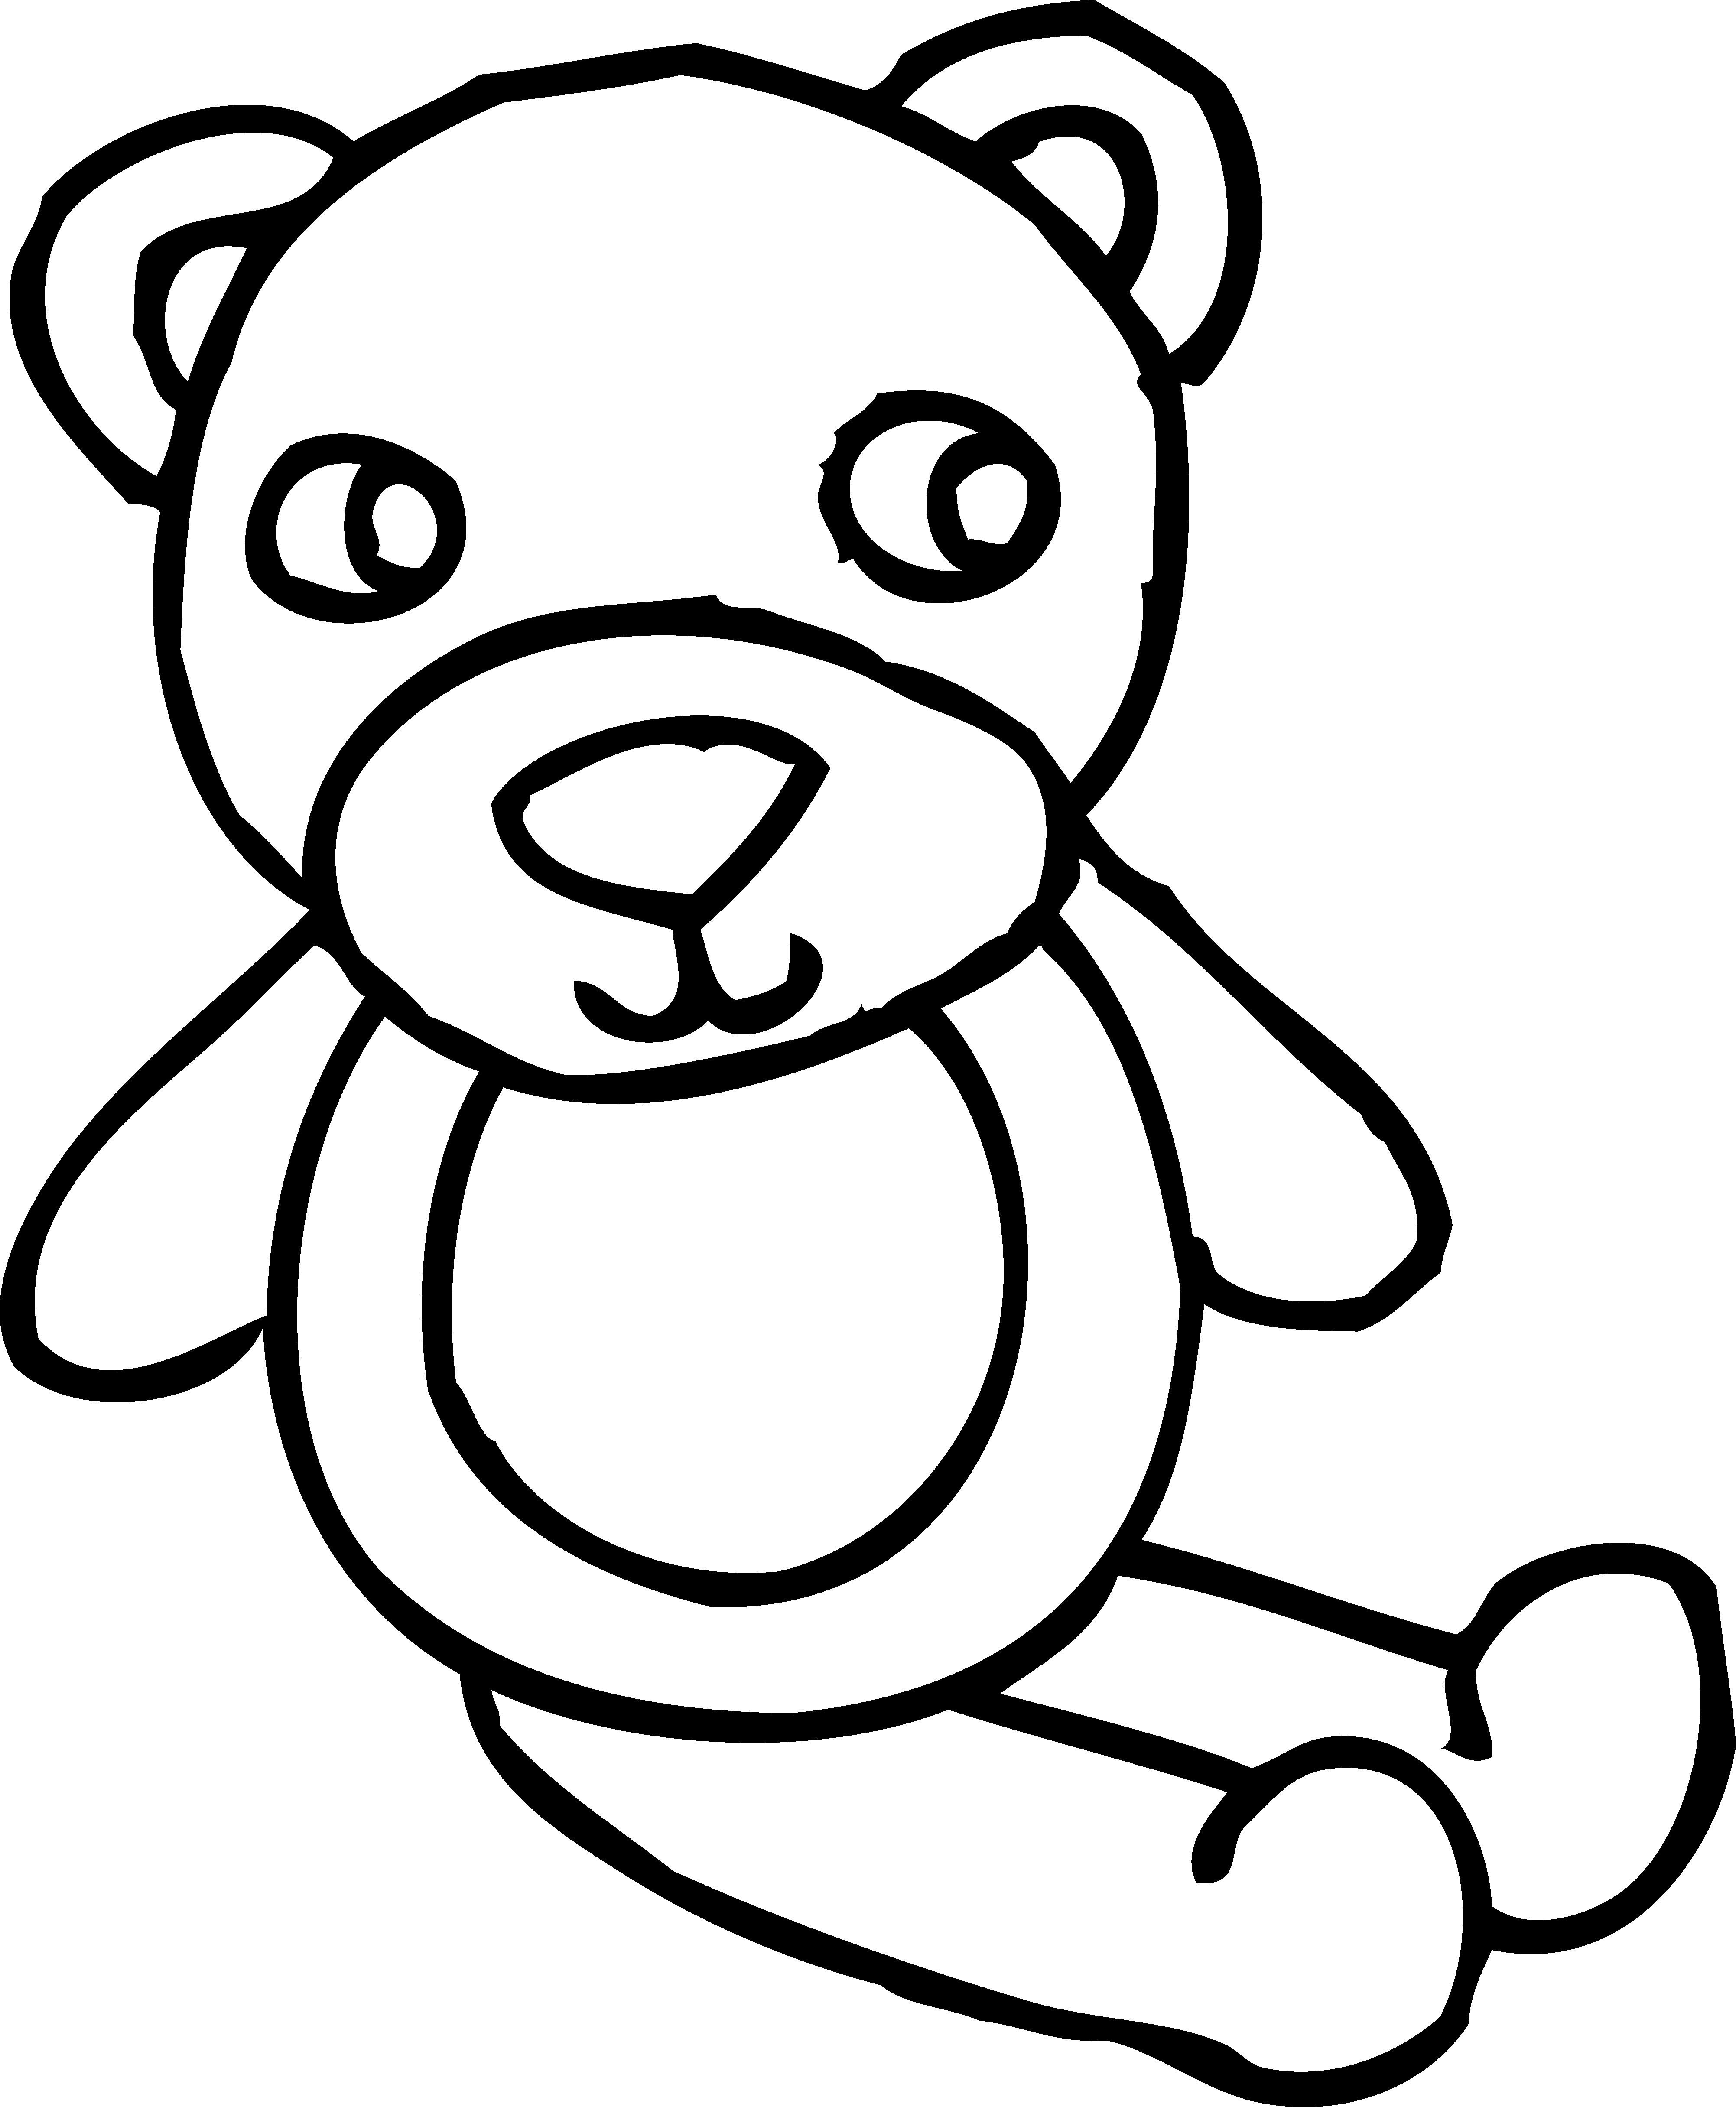 Teddy bear toy coloring. Moses clipart outline